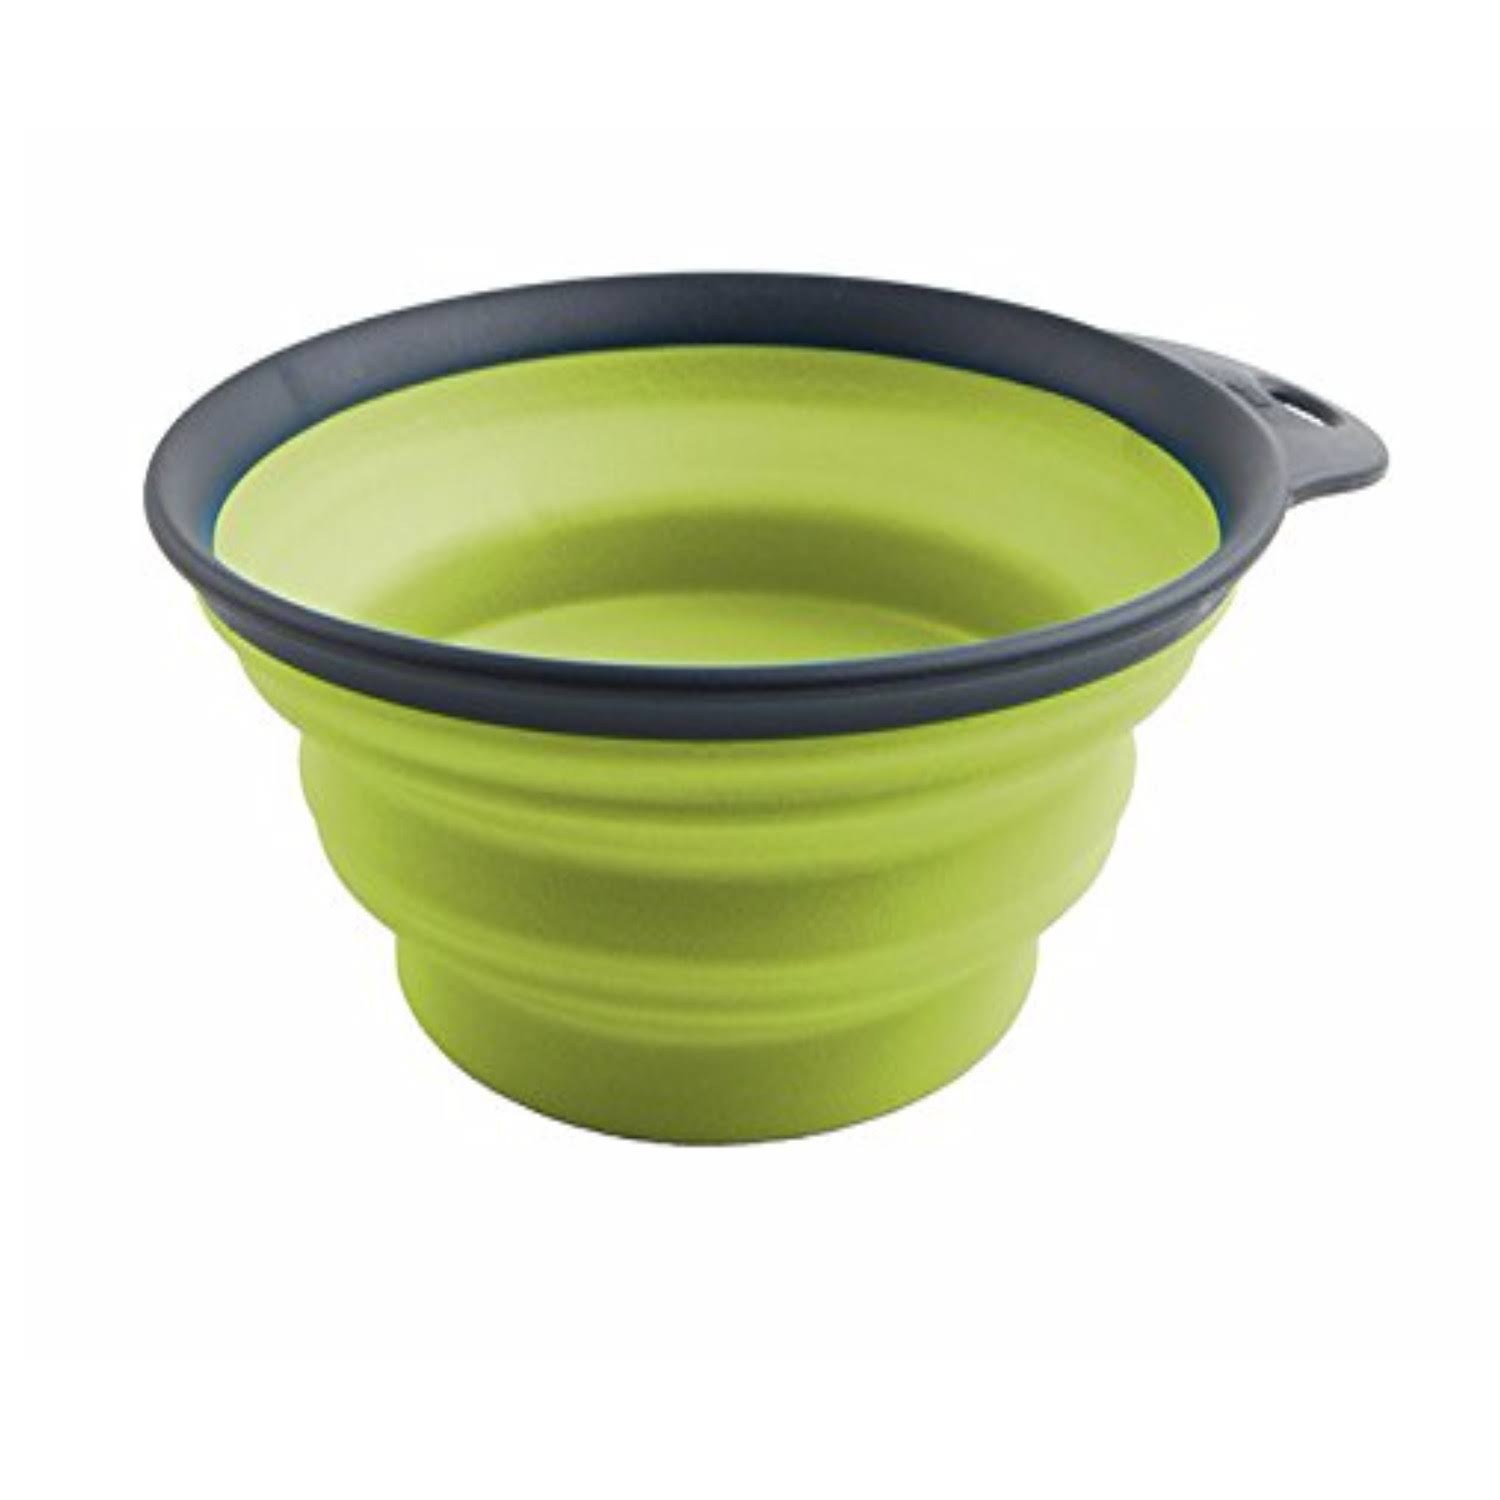 Dexas Popware For Pets Collapsible Travel Cup - Large, Gray, Green